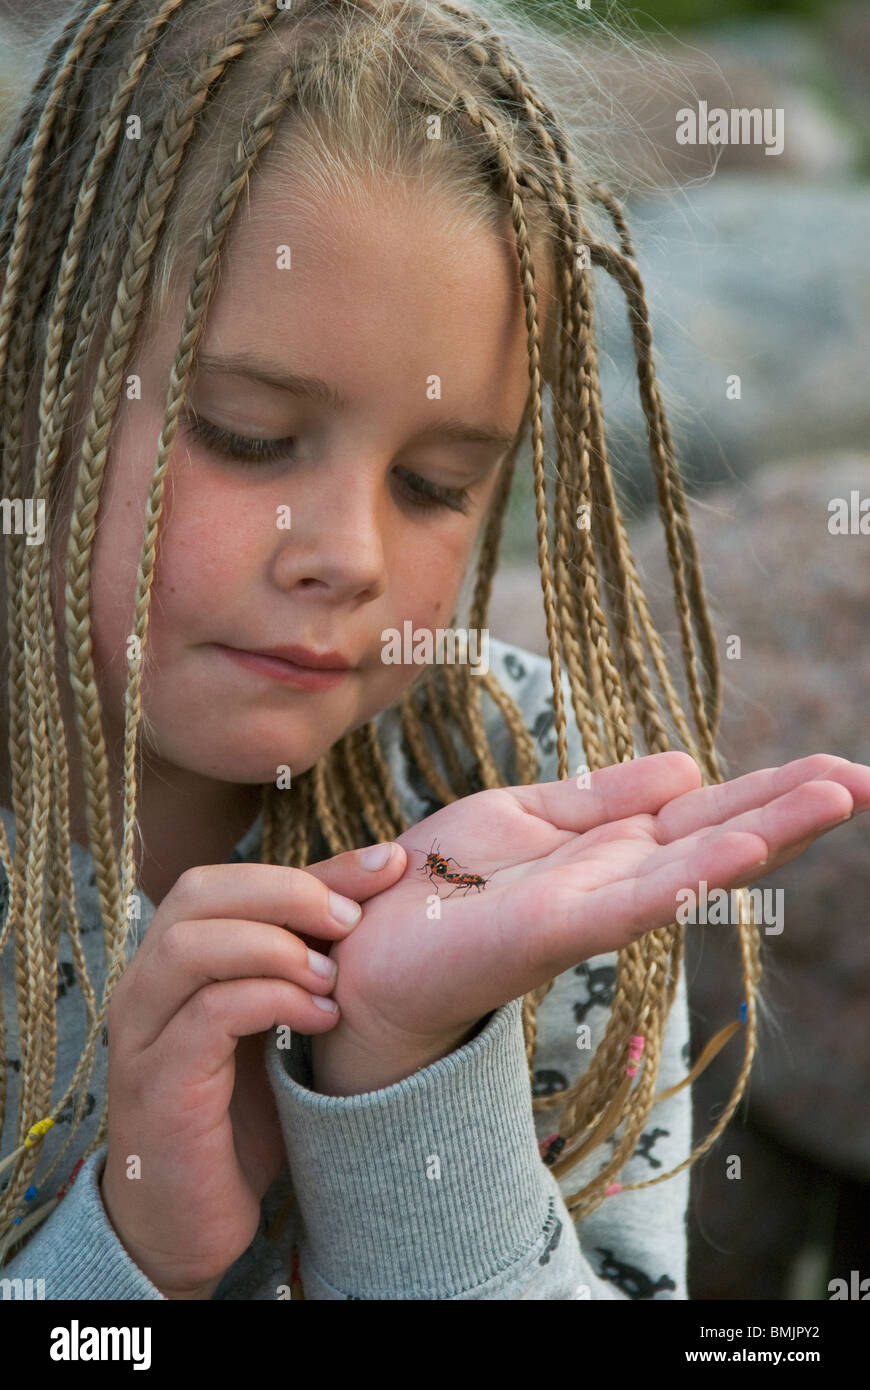 Scandinavia, Sweden, Smaland, Girl (6-7) with holding bug on palm, close-up - Stock Image